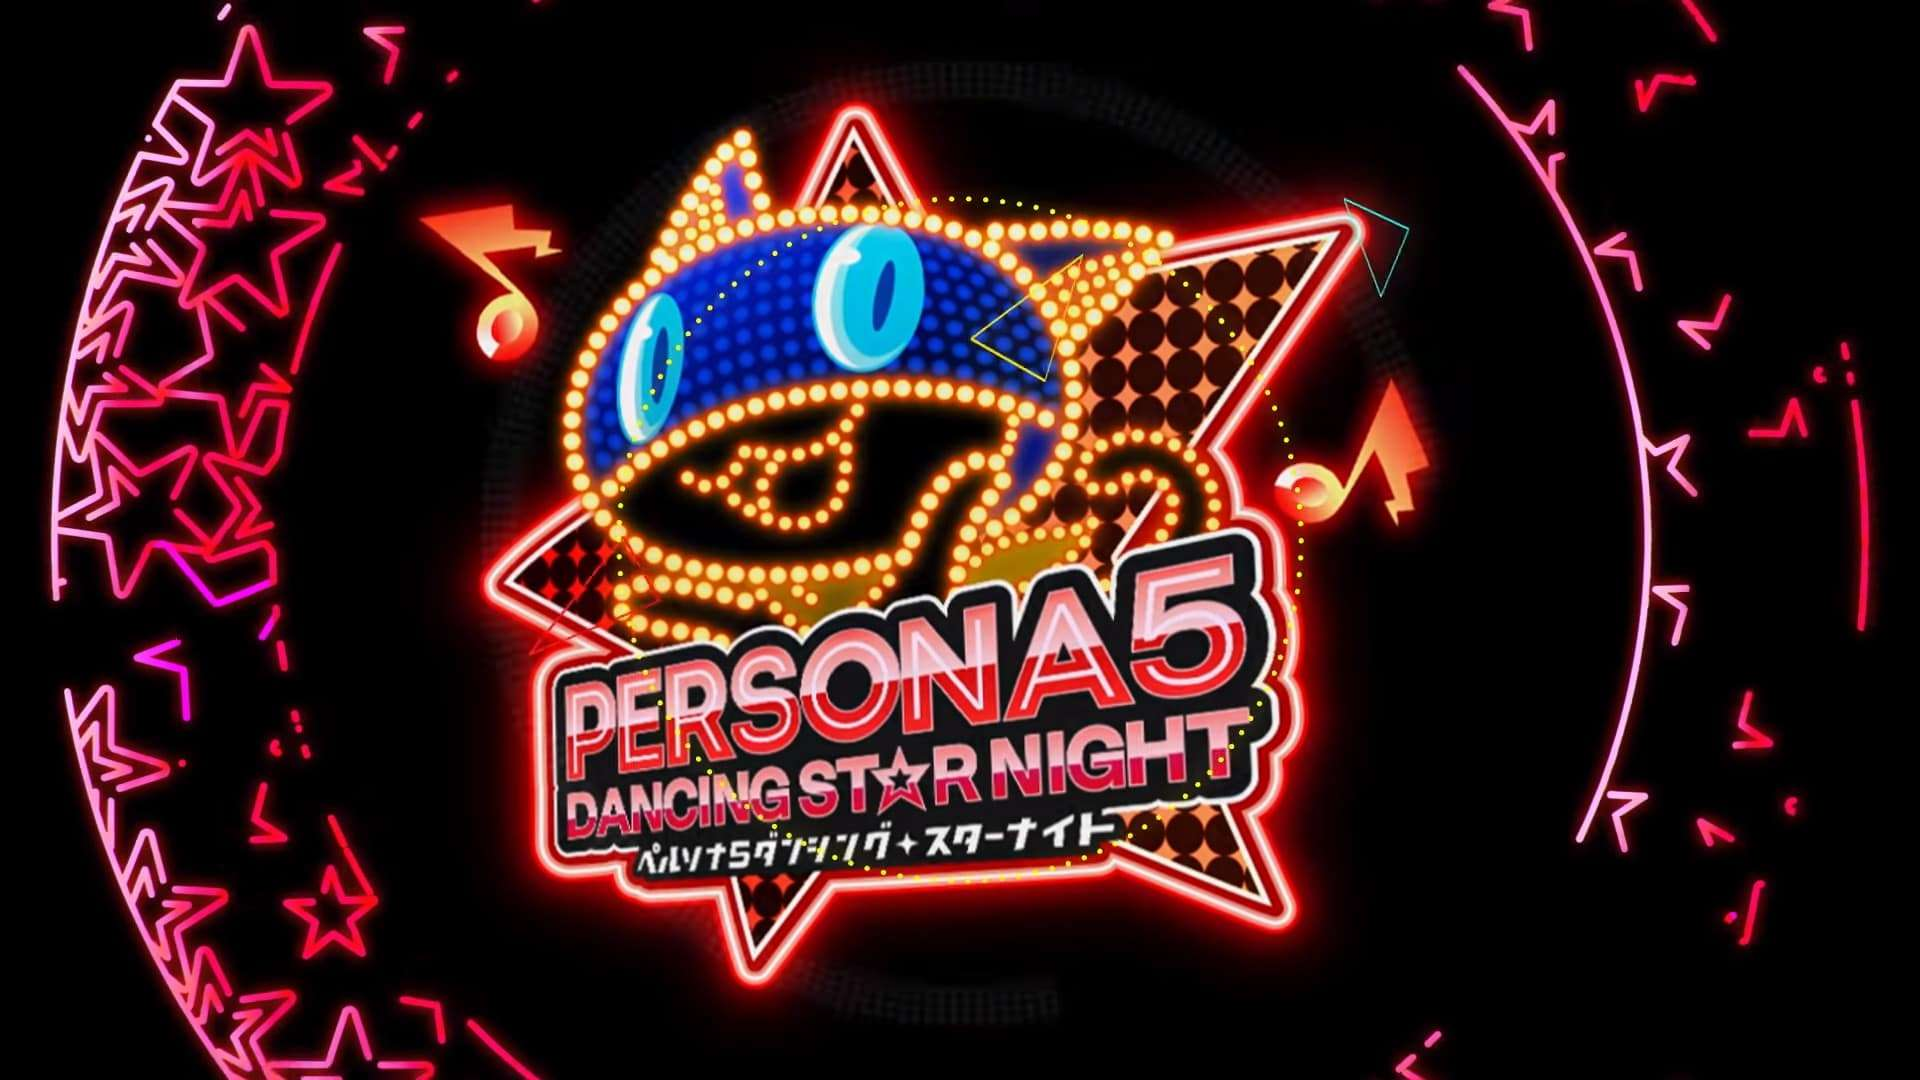 Persona 5 Dancing Star Night Second Preview Trailer May 24 2018